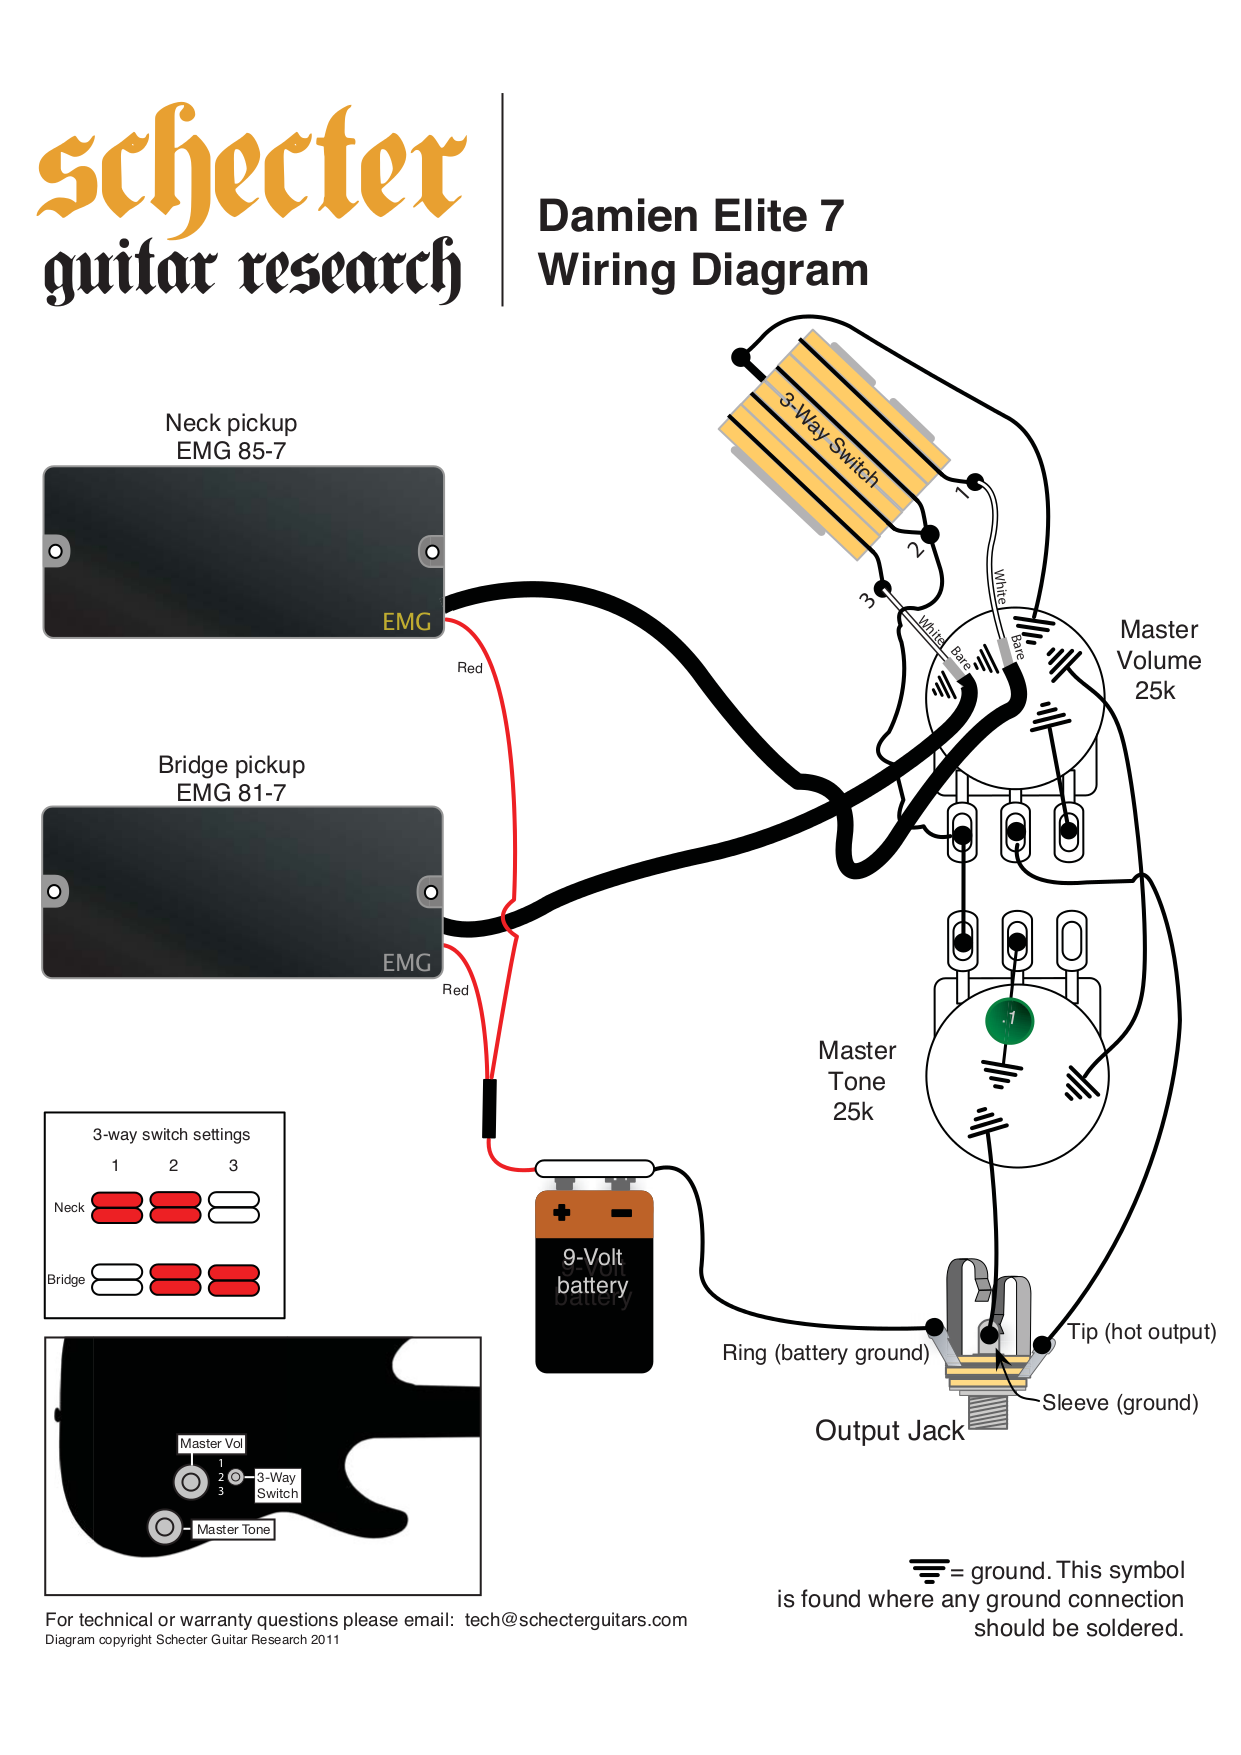 Damien Elite 7.pdf 0 100 [ schecter wiring diagram schecter c ] strat wiring diagram Schecter Diamond Series Wiring Diagram at nearapp.co